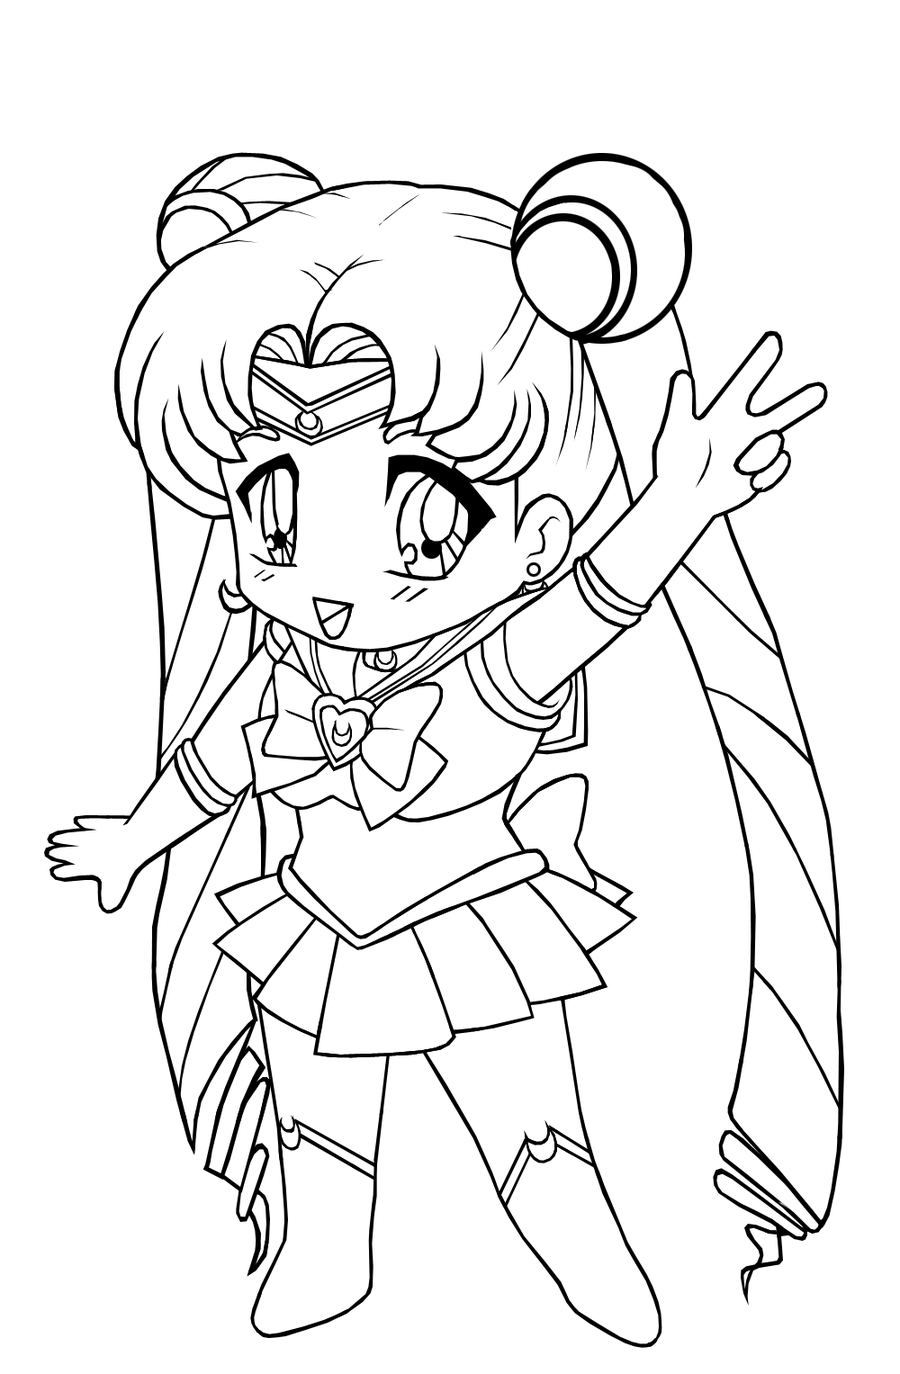 anime girl cat coloring pages - photo#14